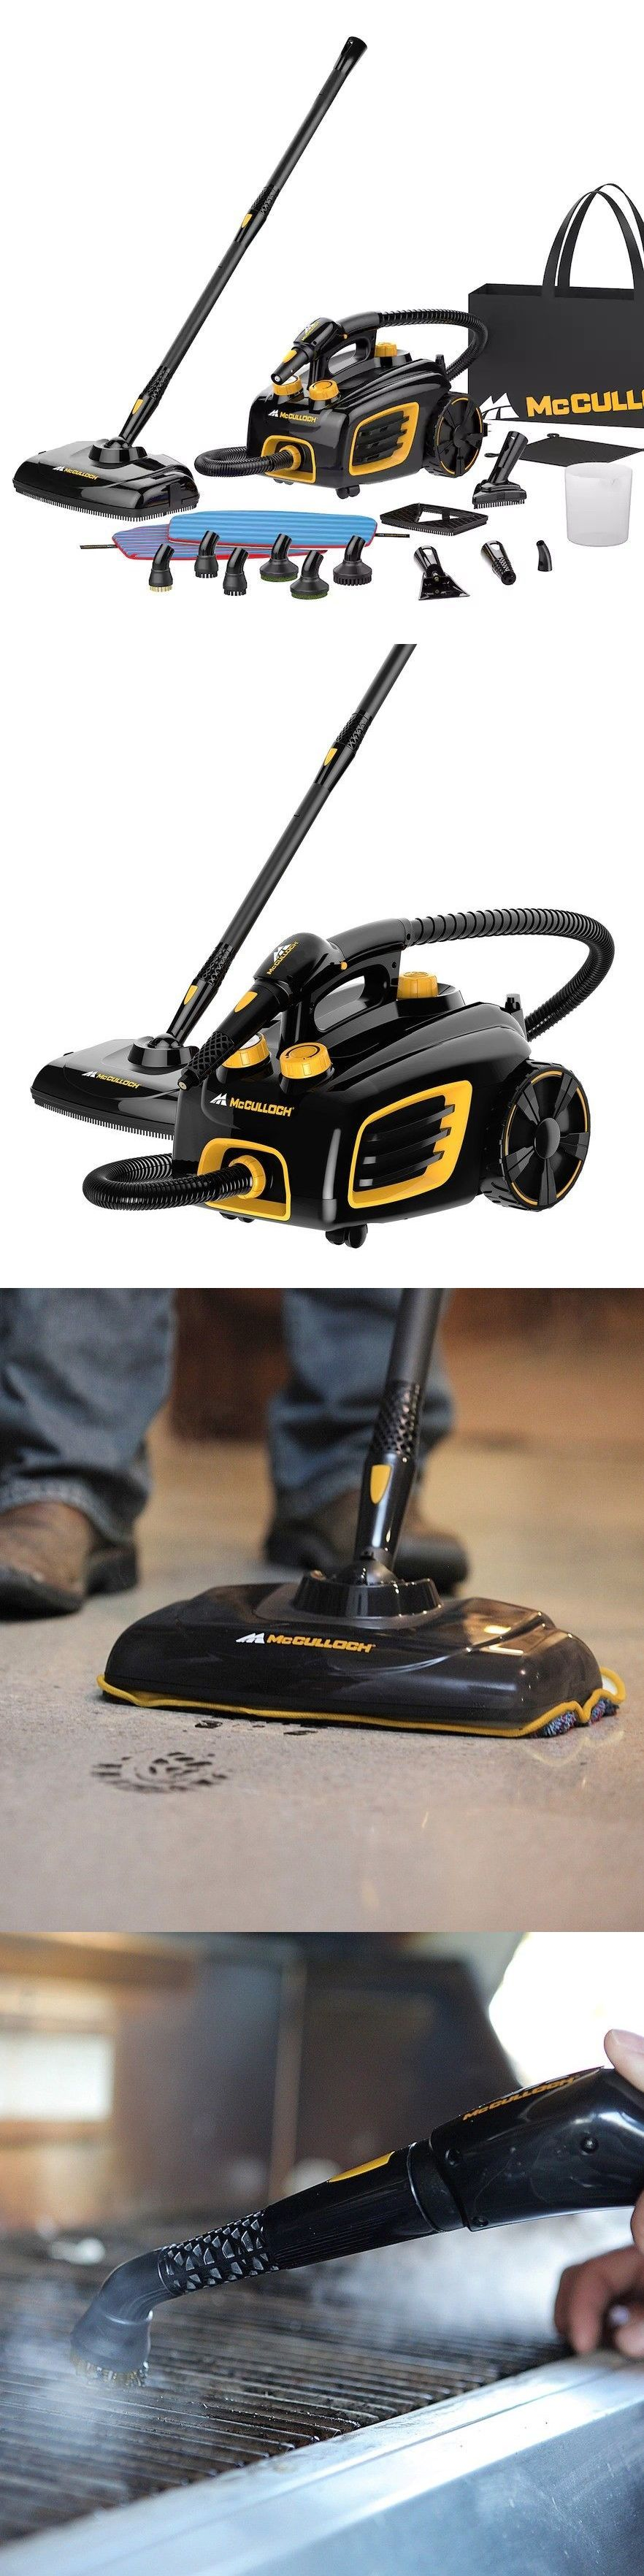 Details About Mcculloch Canister Deep Clean Carpet Floor Steam Cleaner System Mc1375 Carpet Steamers Steam Cleaners Professional Steamer